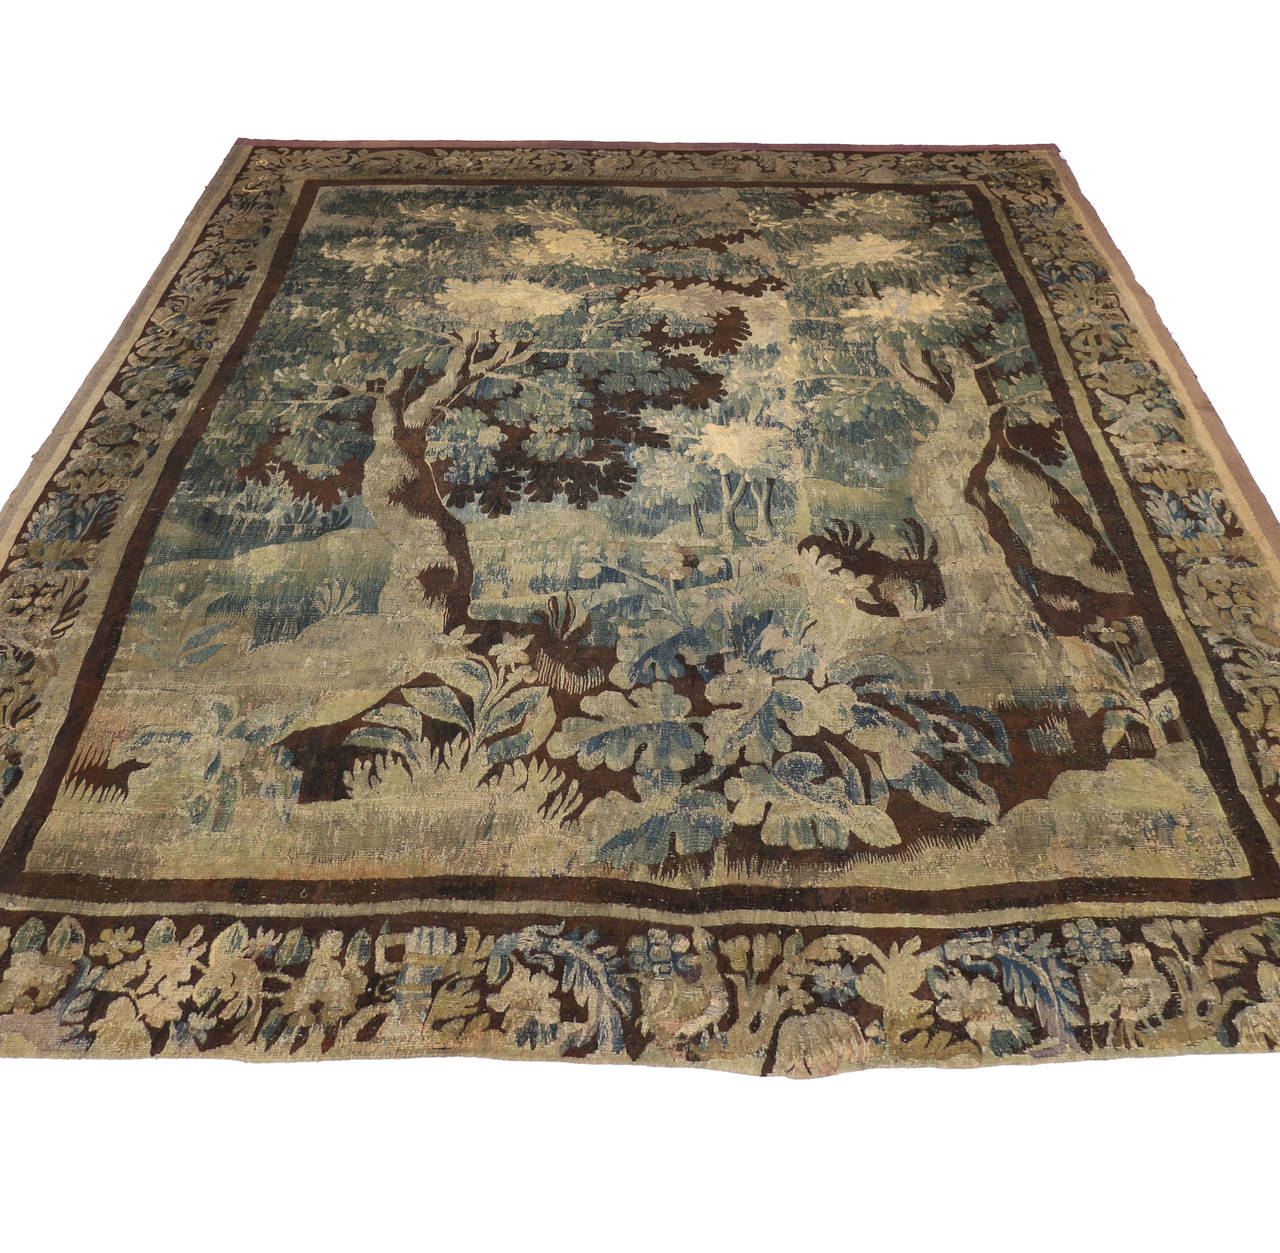 Mid-18th Century Louis XIV Style Antique French Aubusson Verdure Tapestry In Distressed Condition For Sale In Dallas, TX